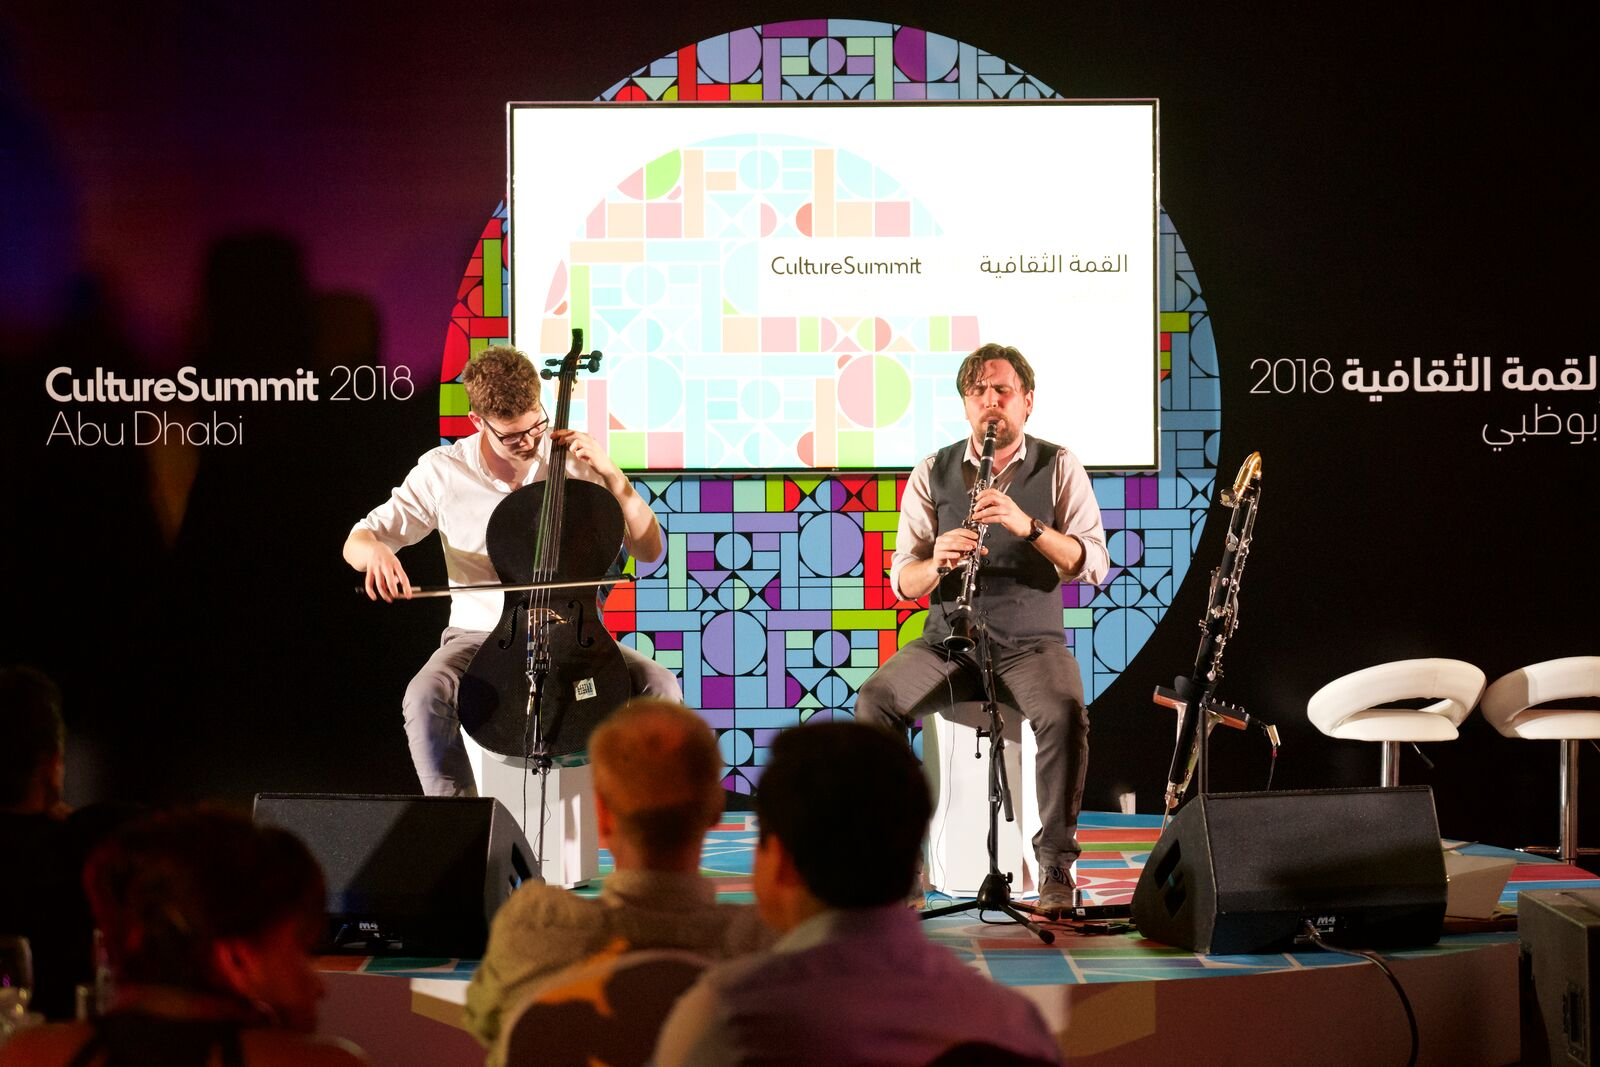 Abu Dhabi Culture Summit (2018)